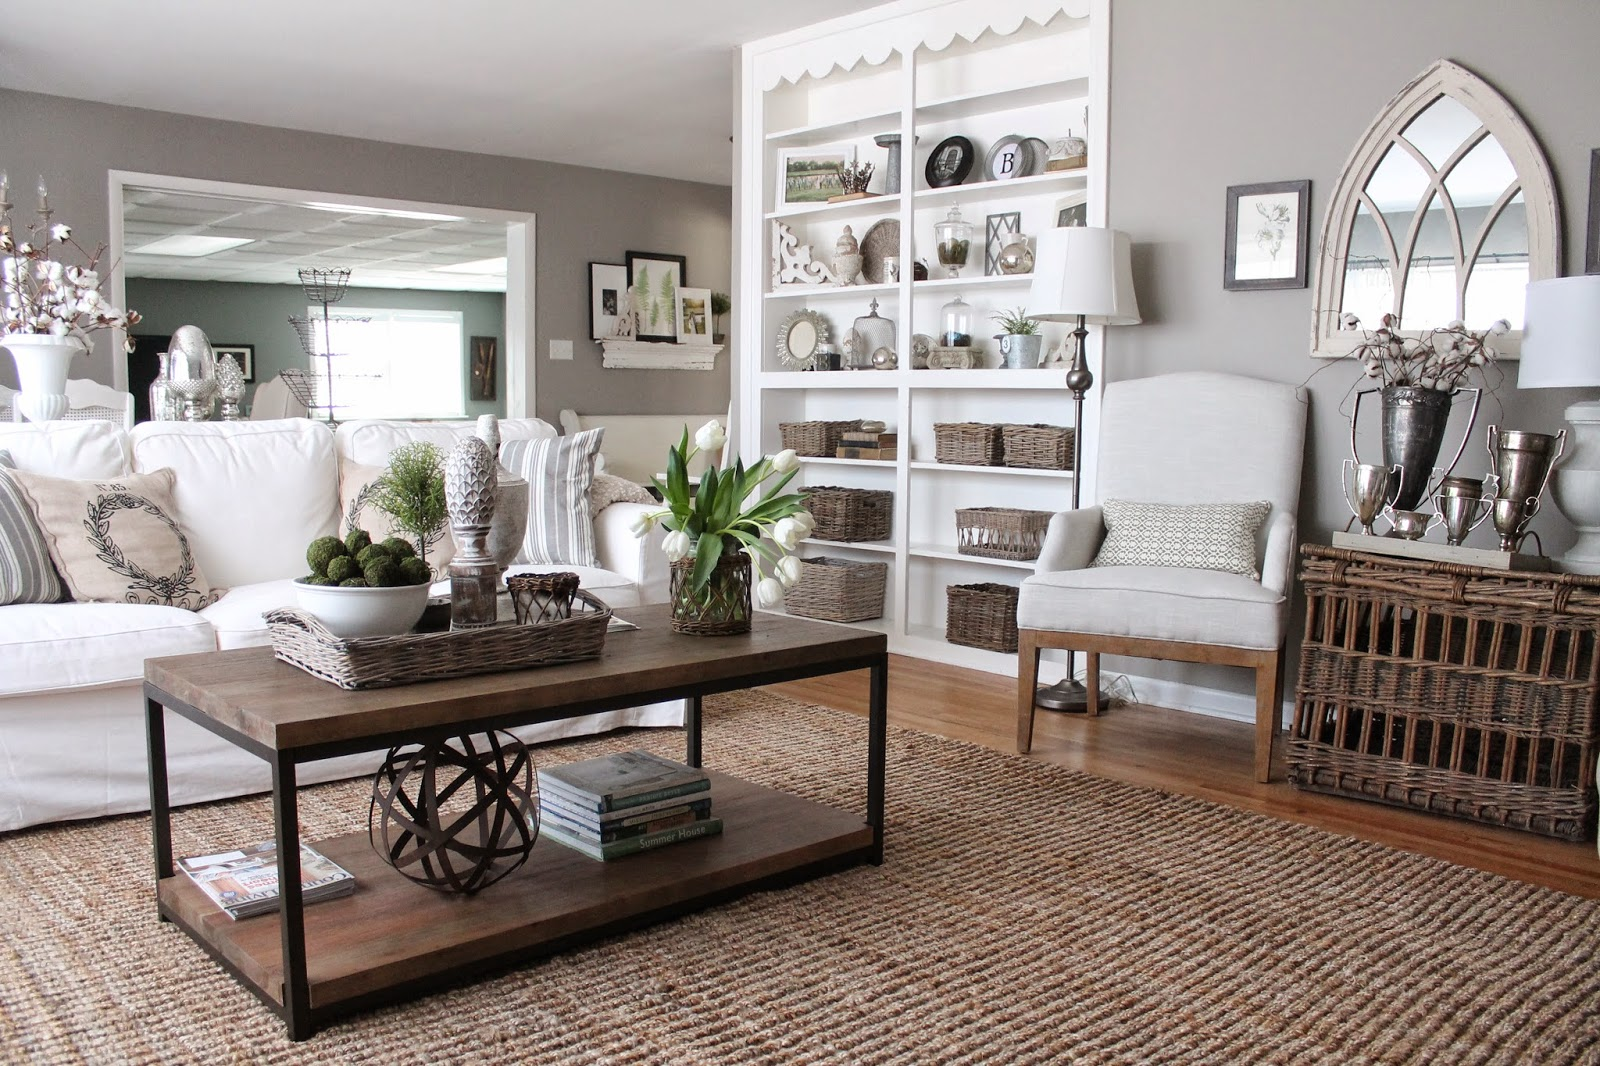 12th and white how to choose gray paint colors - Grey paint living room ...